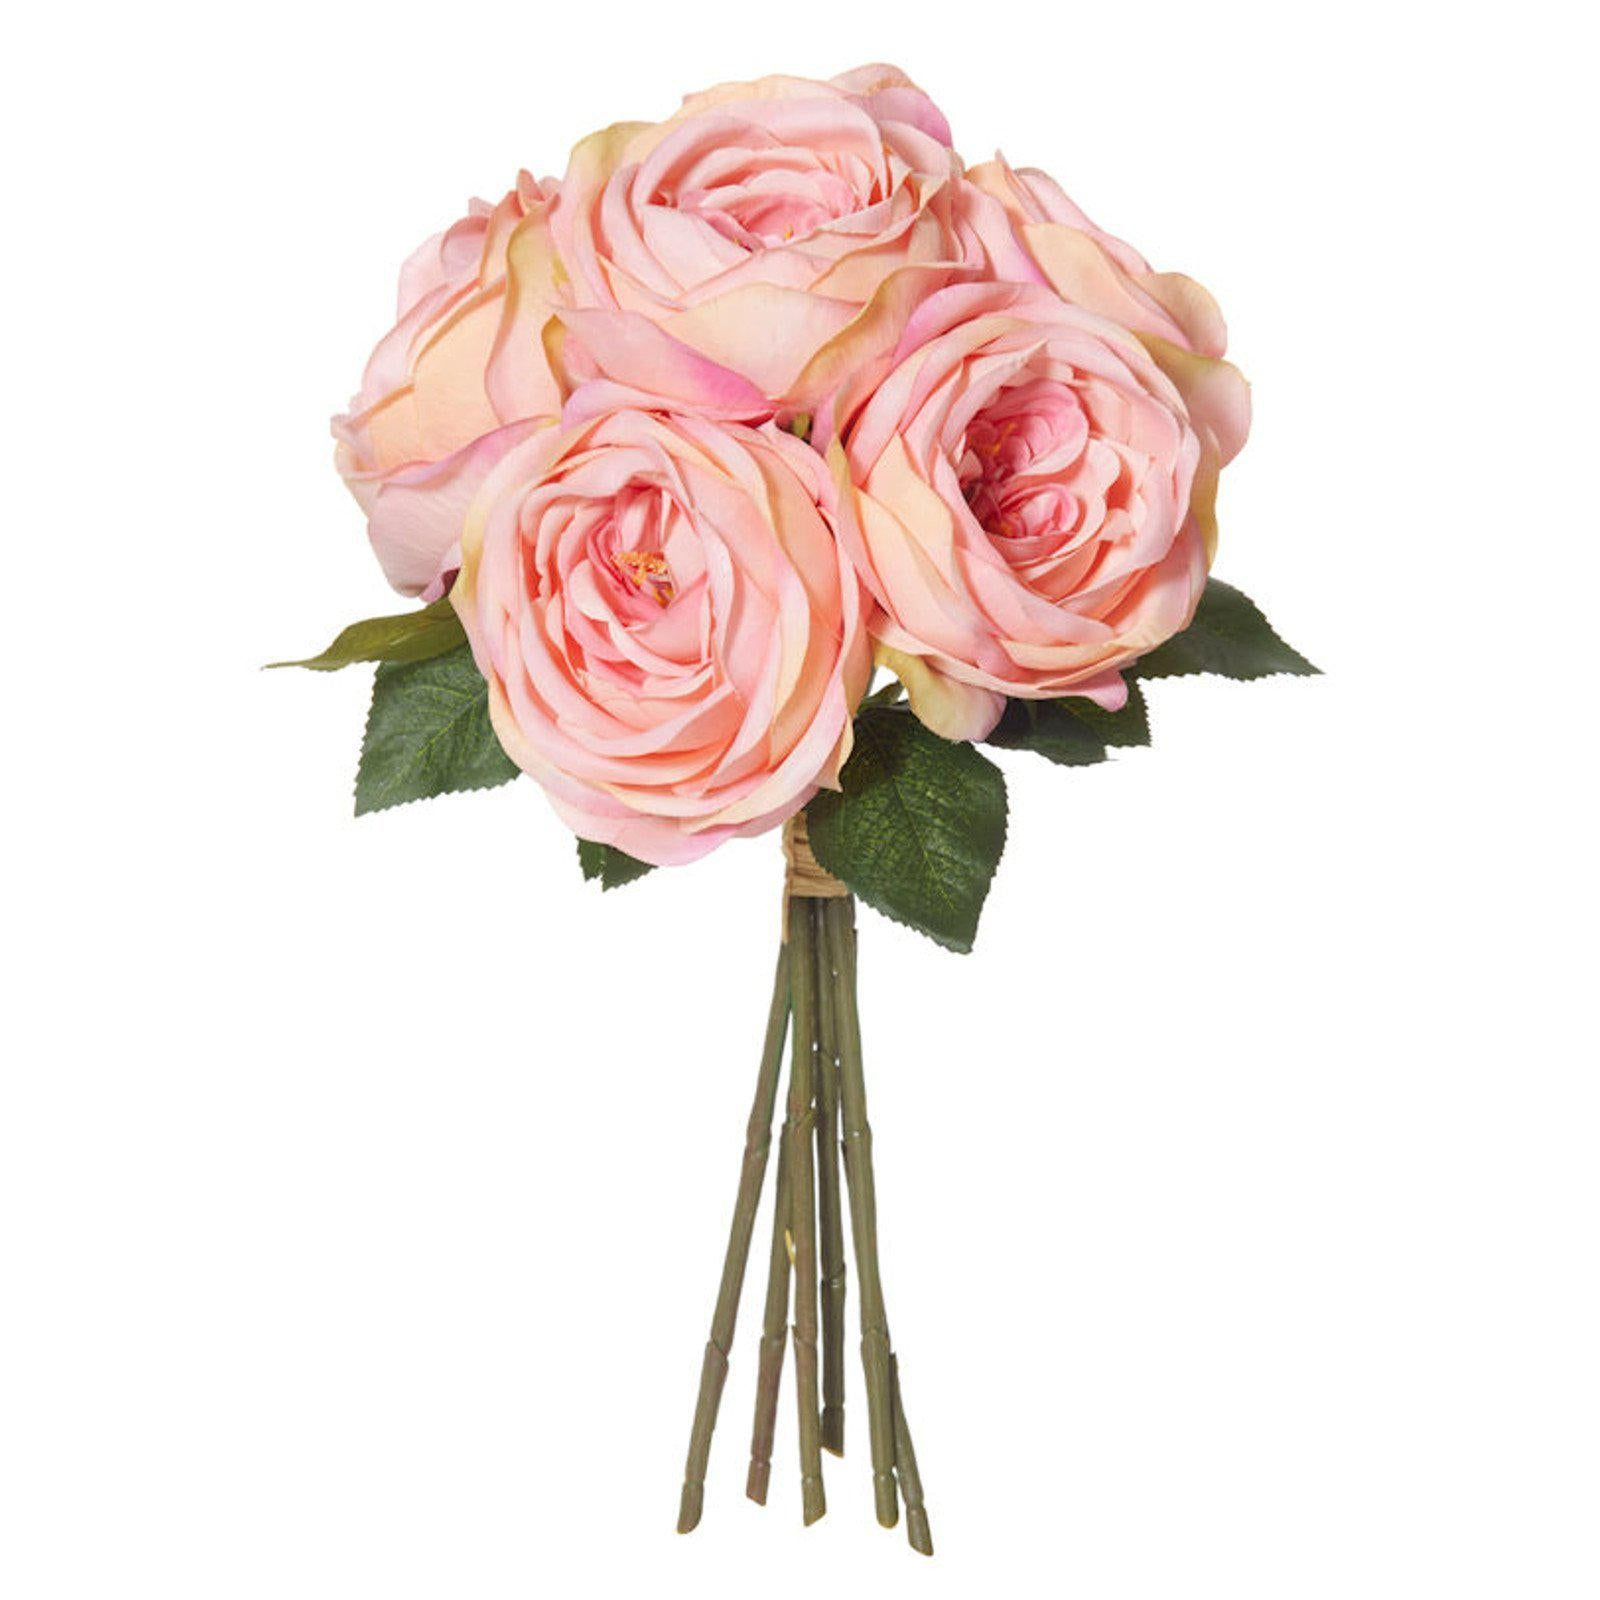 Columbian Rose Bouquet - Artificial Floral Arrangement-artificial flowers and plants-Chef's Quality Cookware